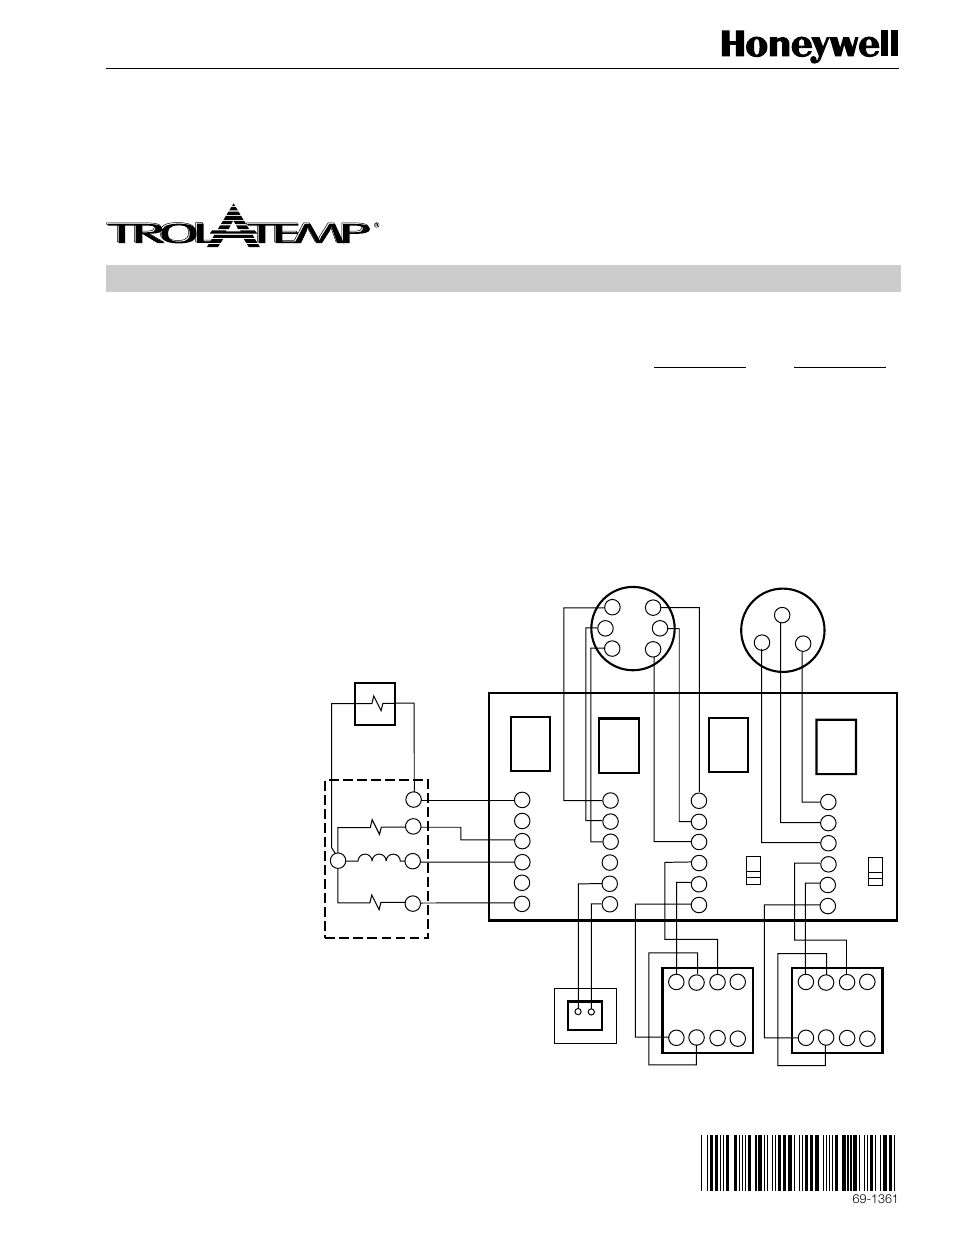 trol a temp mm2 wiring diagram